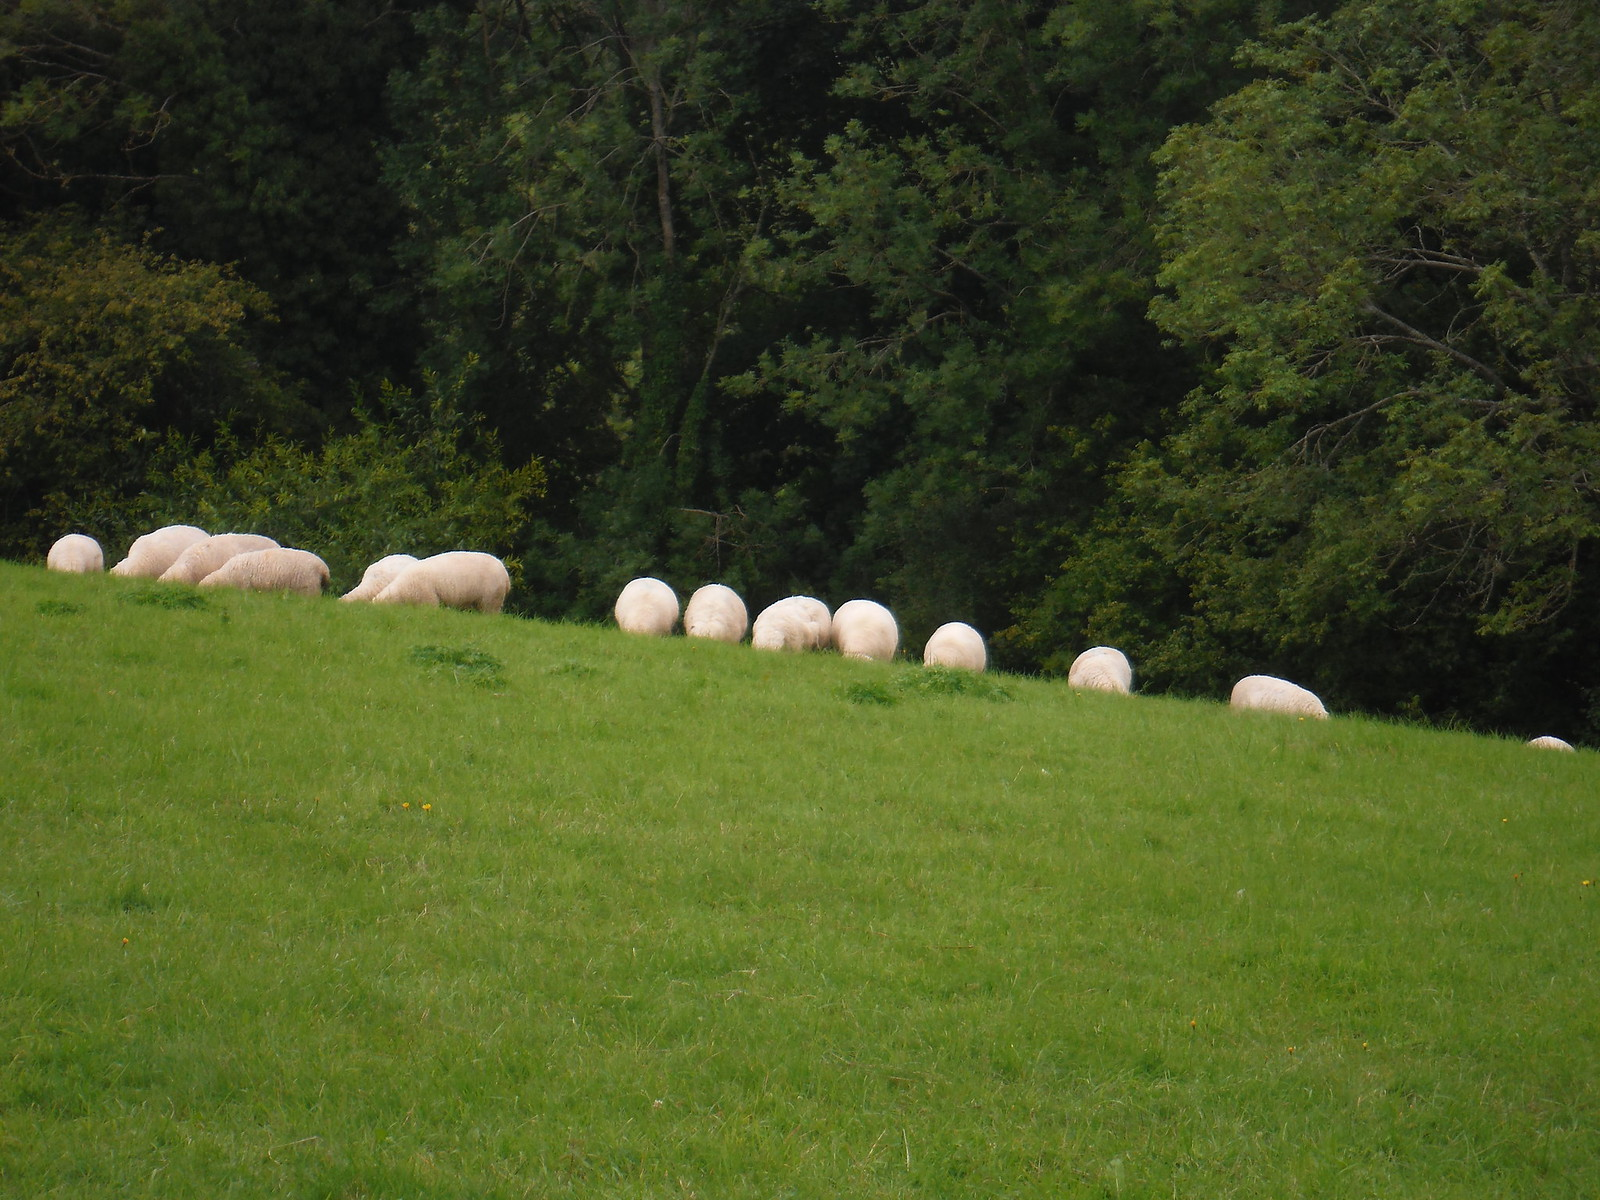 Headless Sheep SWC Walk 250 Tisbury Circular via Alvediston